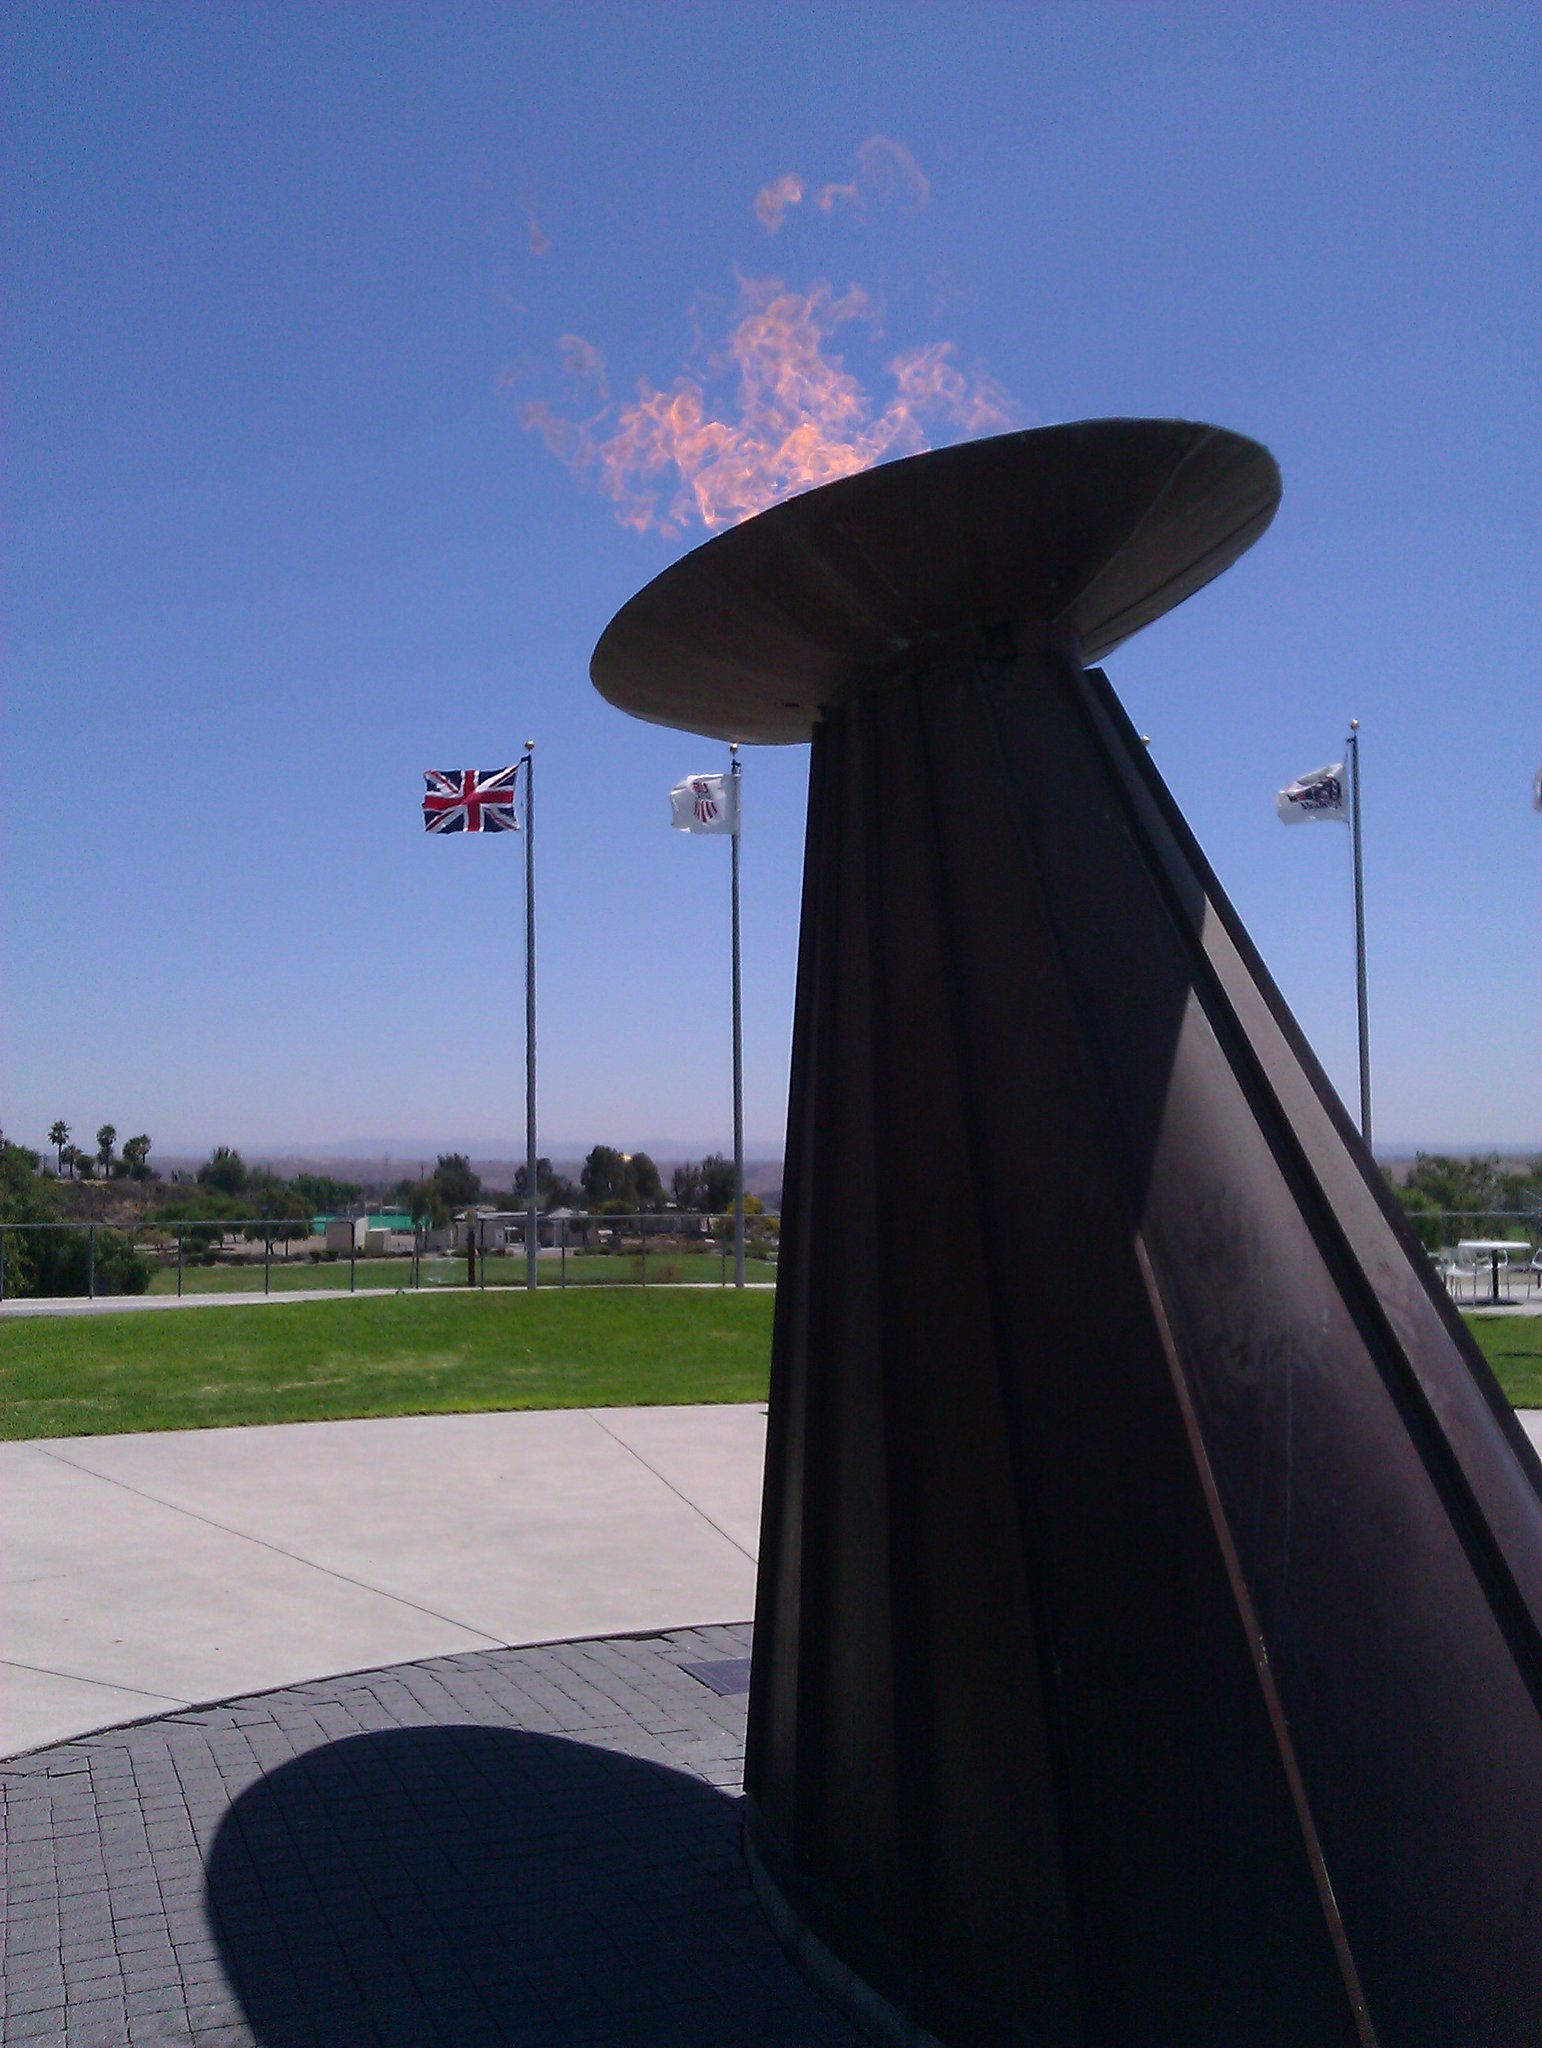 The @olympics torch is lit in #sandiego Olympic training center. #teamusa #excited http://t.co/yv8L20bb